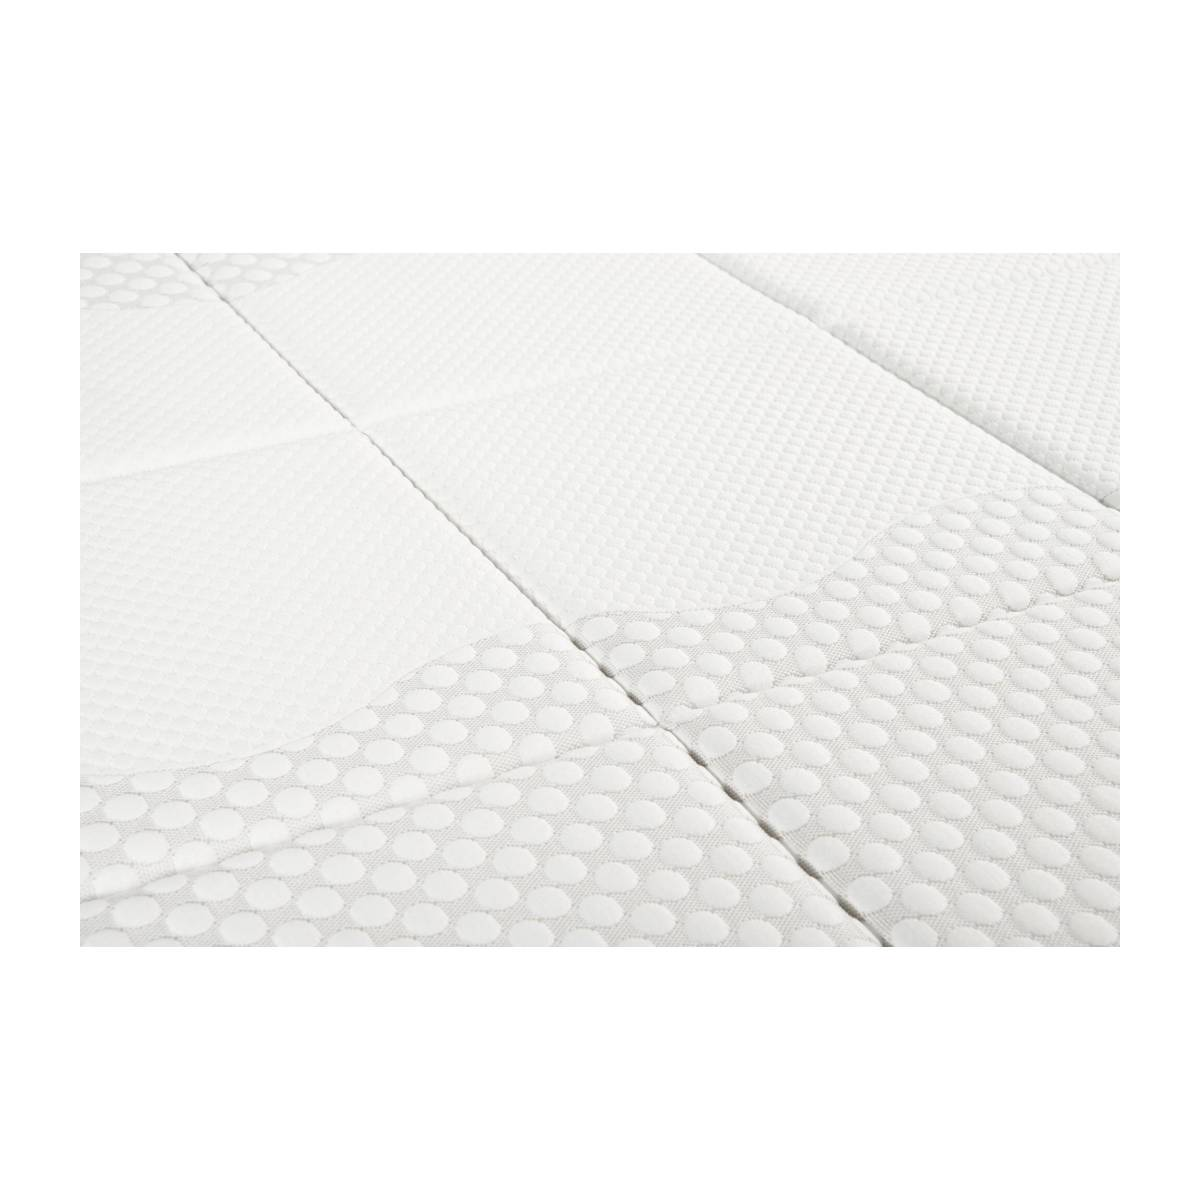 Foam mattress, width 24 cm, 180x200cm - firm support n°4